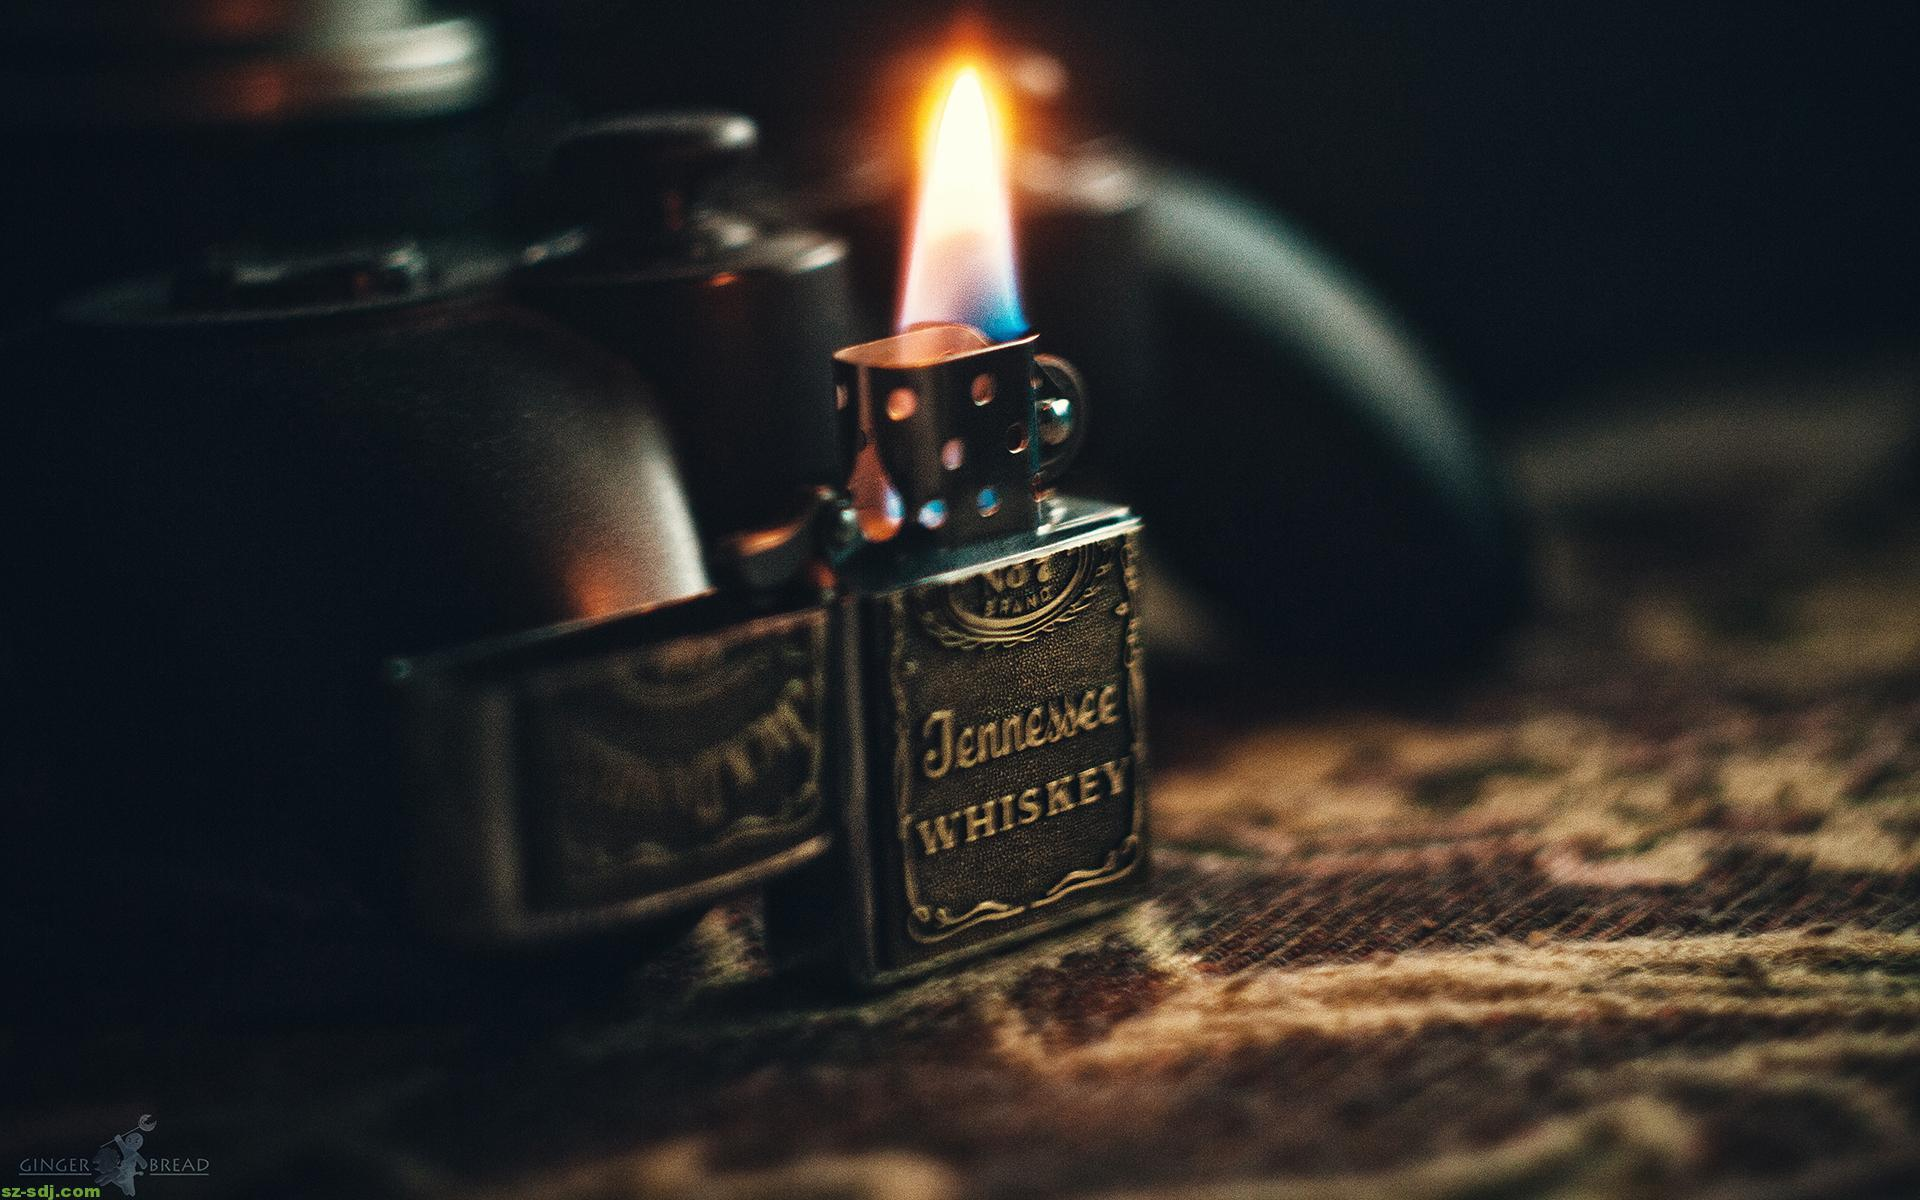 Free Full HD Wallpapers Of 2015 Zippo Lighters - Wallpaper ...